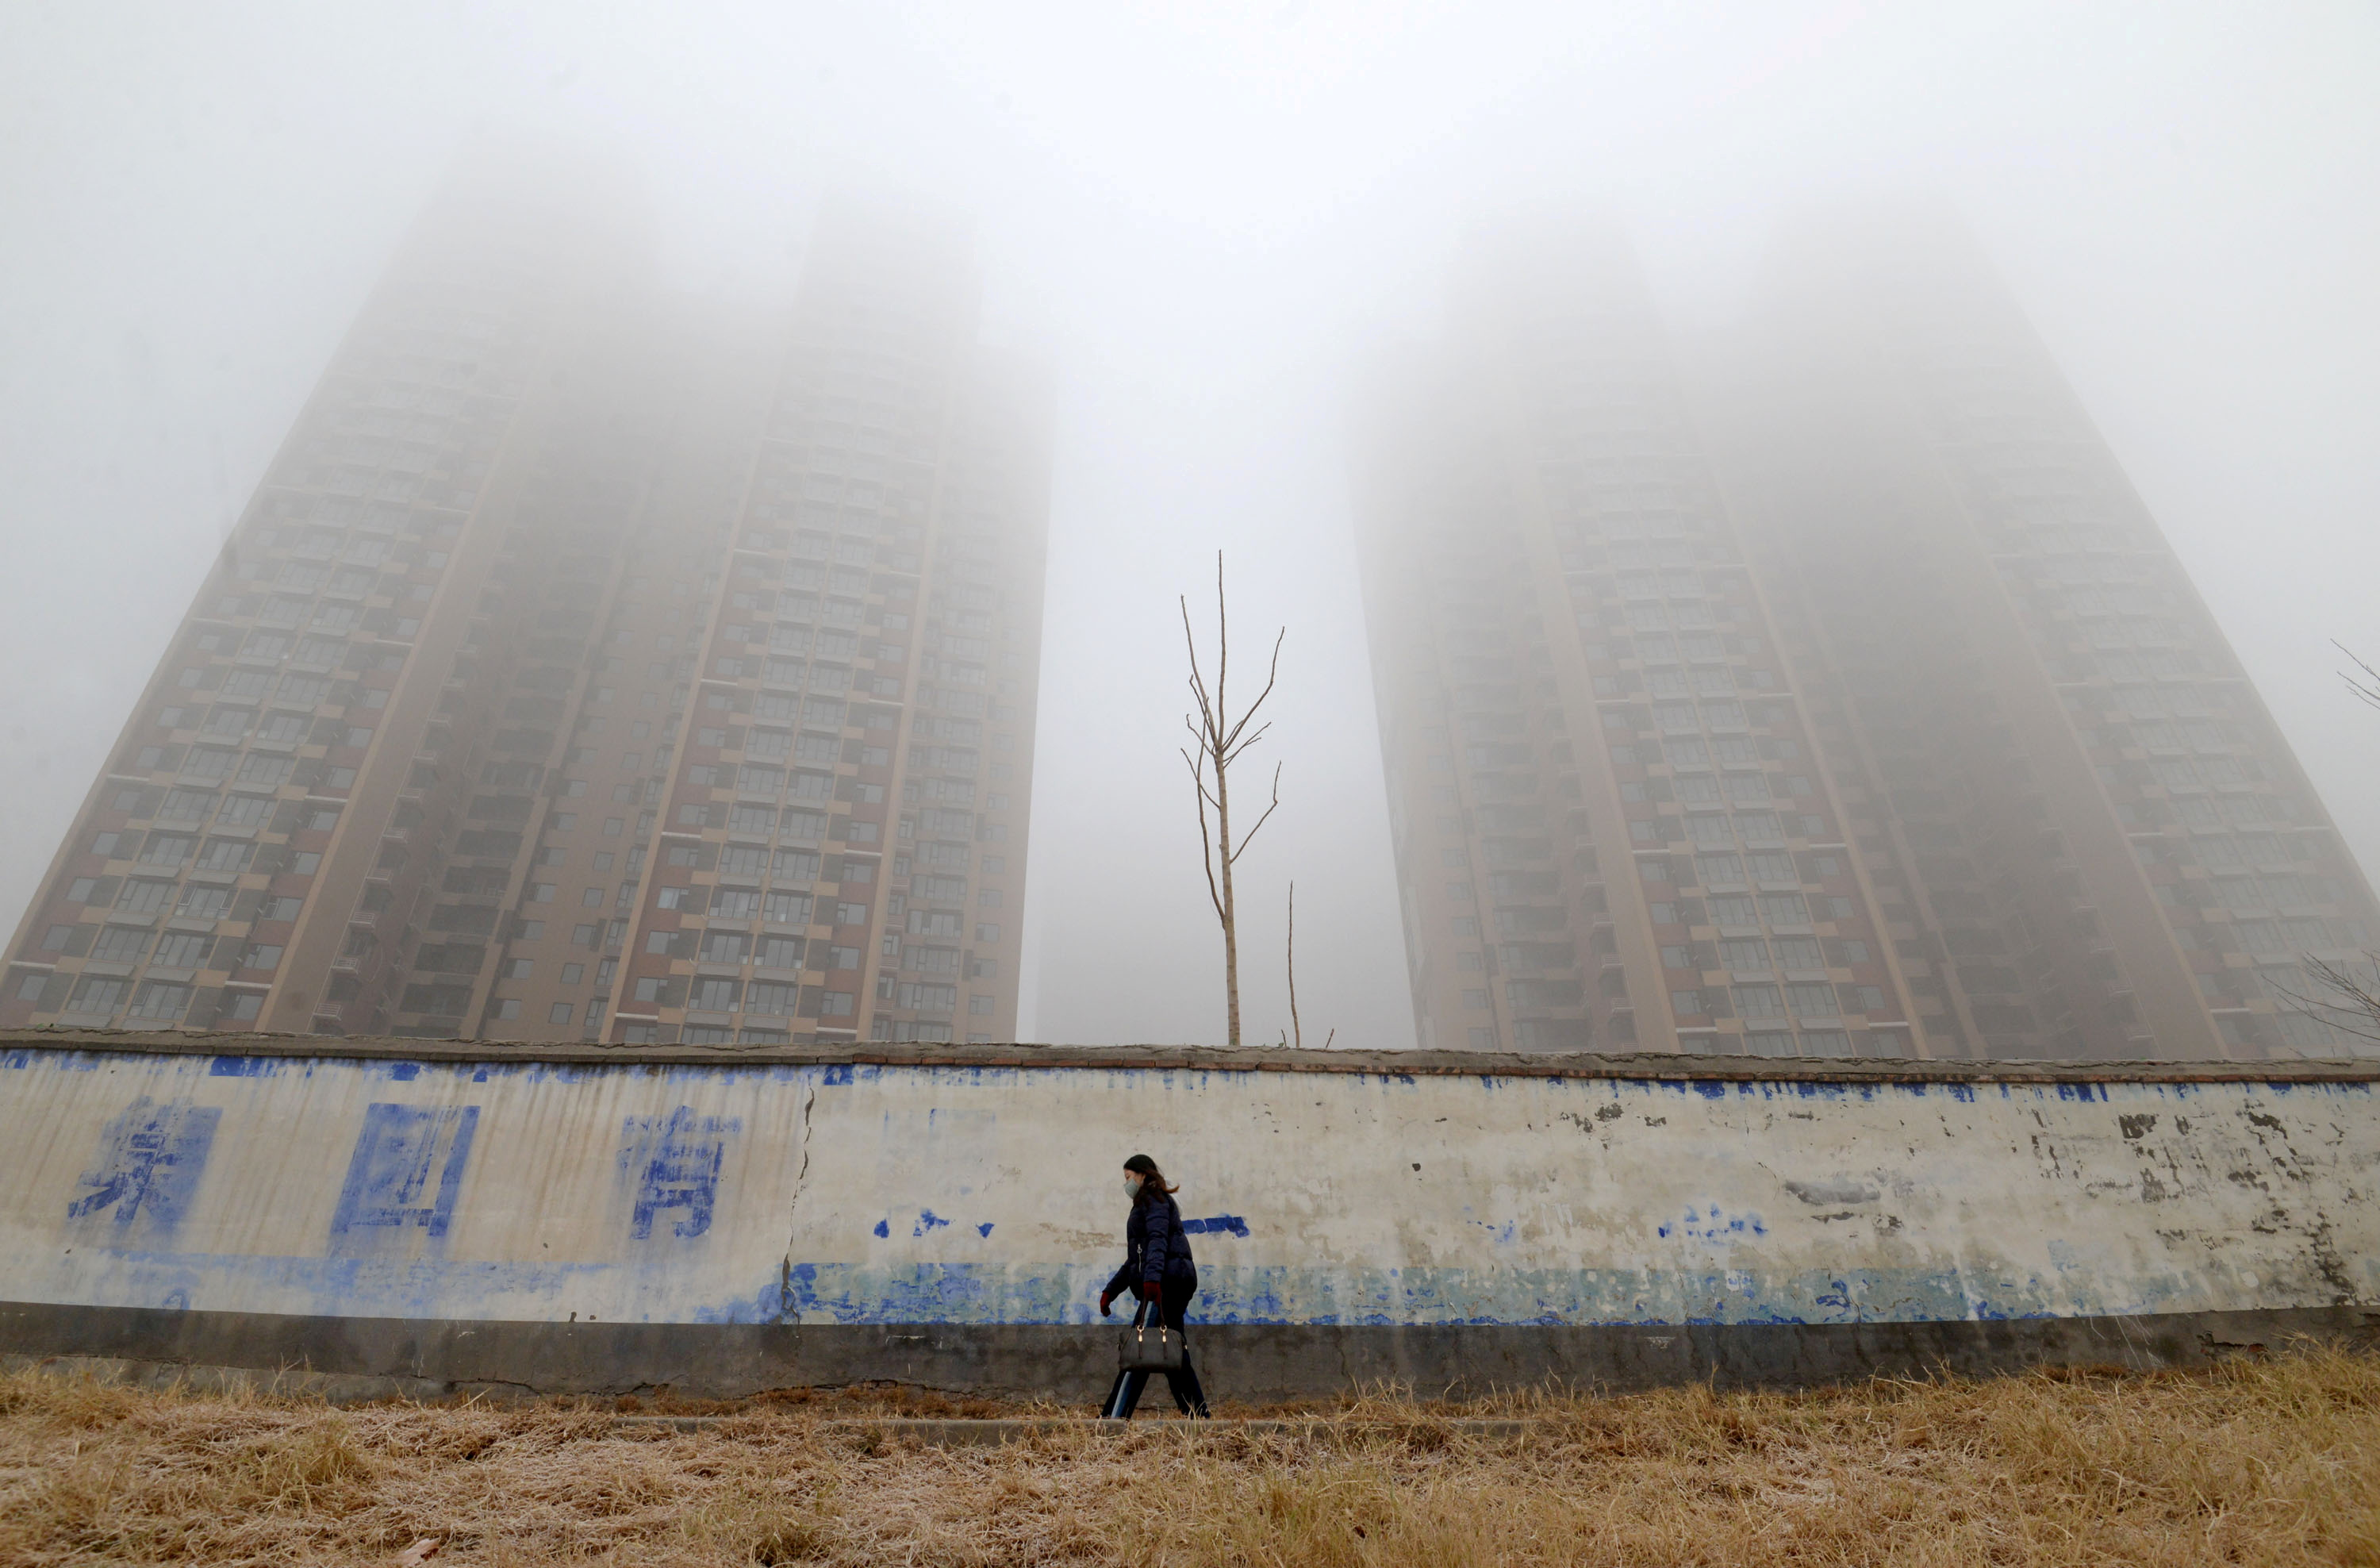 A woman wearing a mask walks past buildings on a polluted day in Handan, Hebei province, China January 12, 2019. REUTERS/Stringer